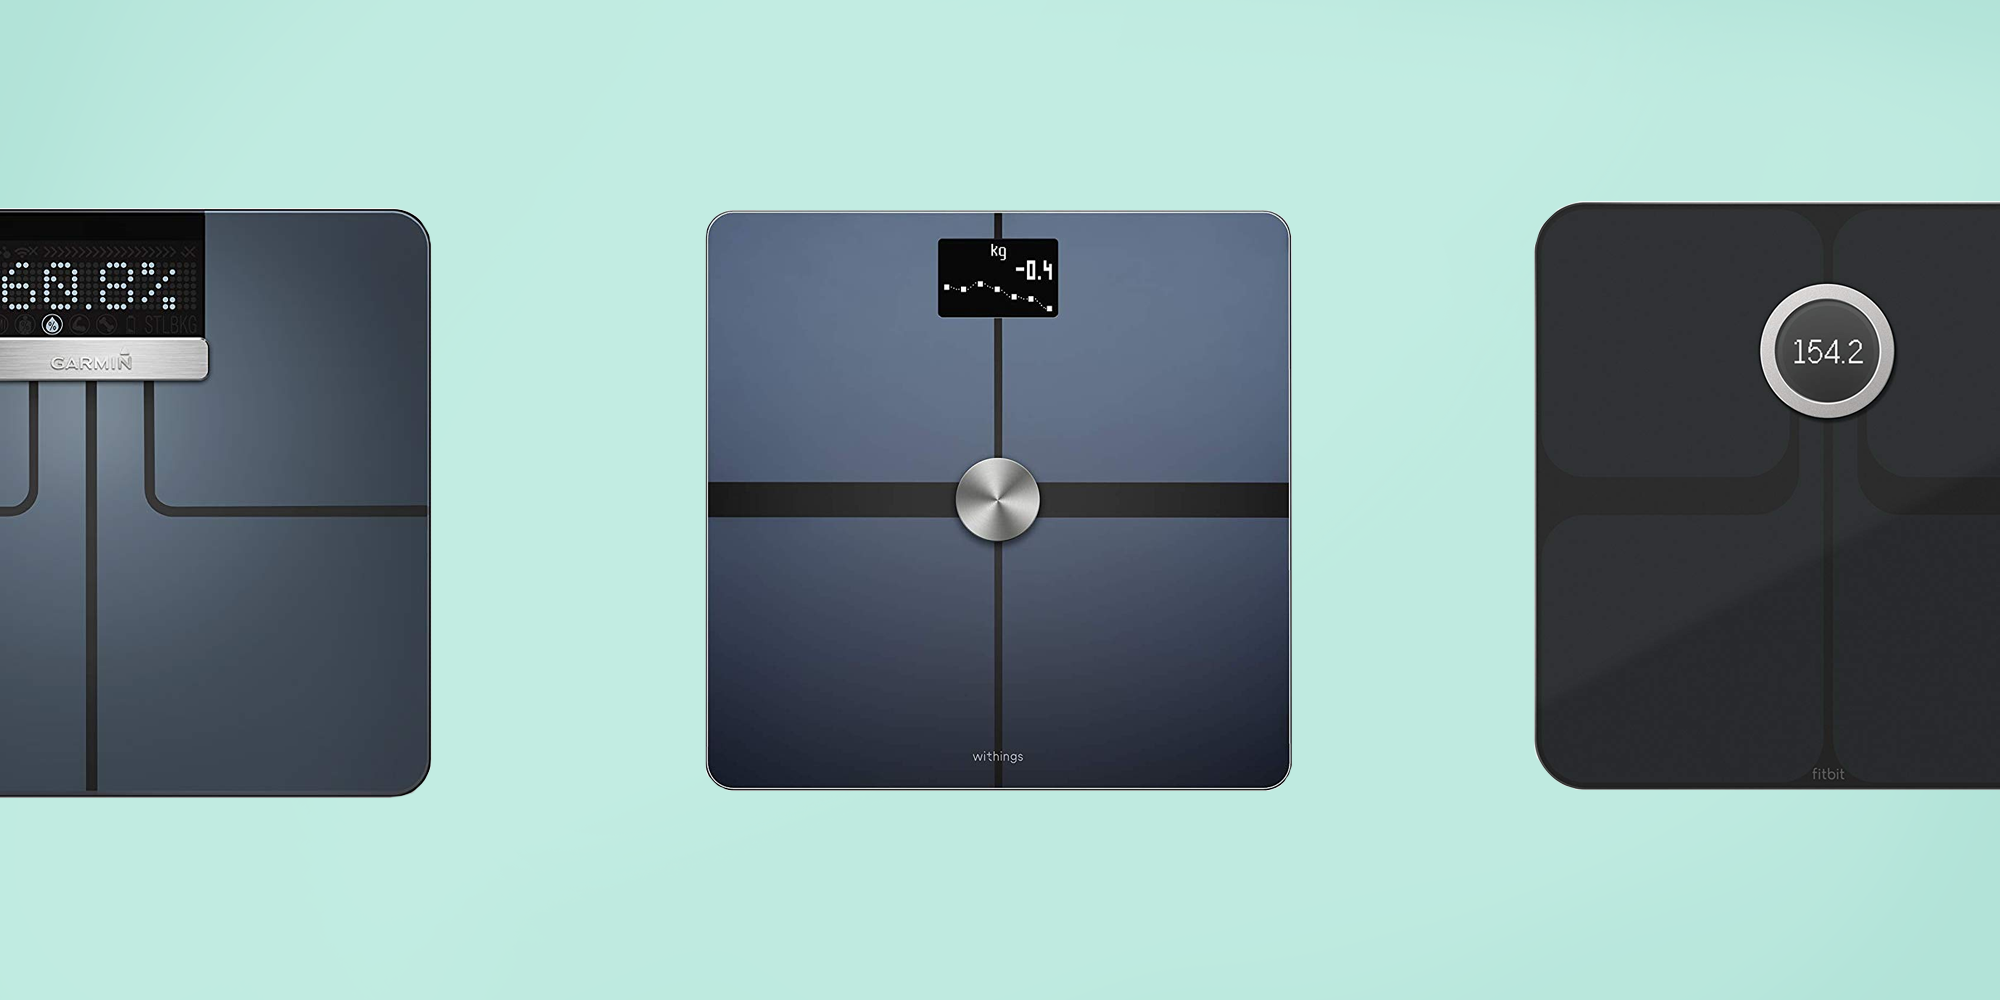 dded43ec39e3 11 Best Digital Bathroom Scales - Most Accurate Bathroom Scale Reviews